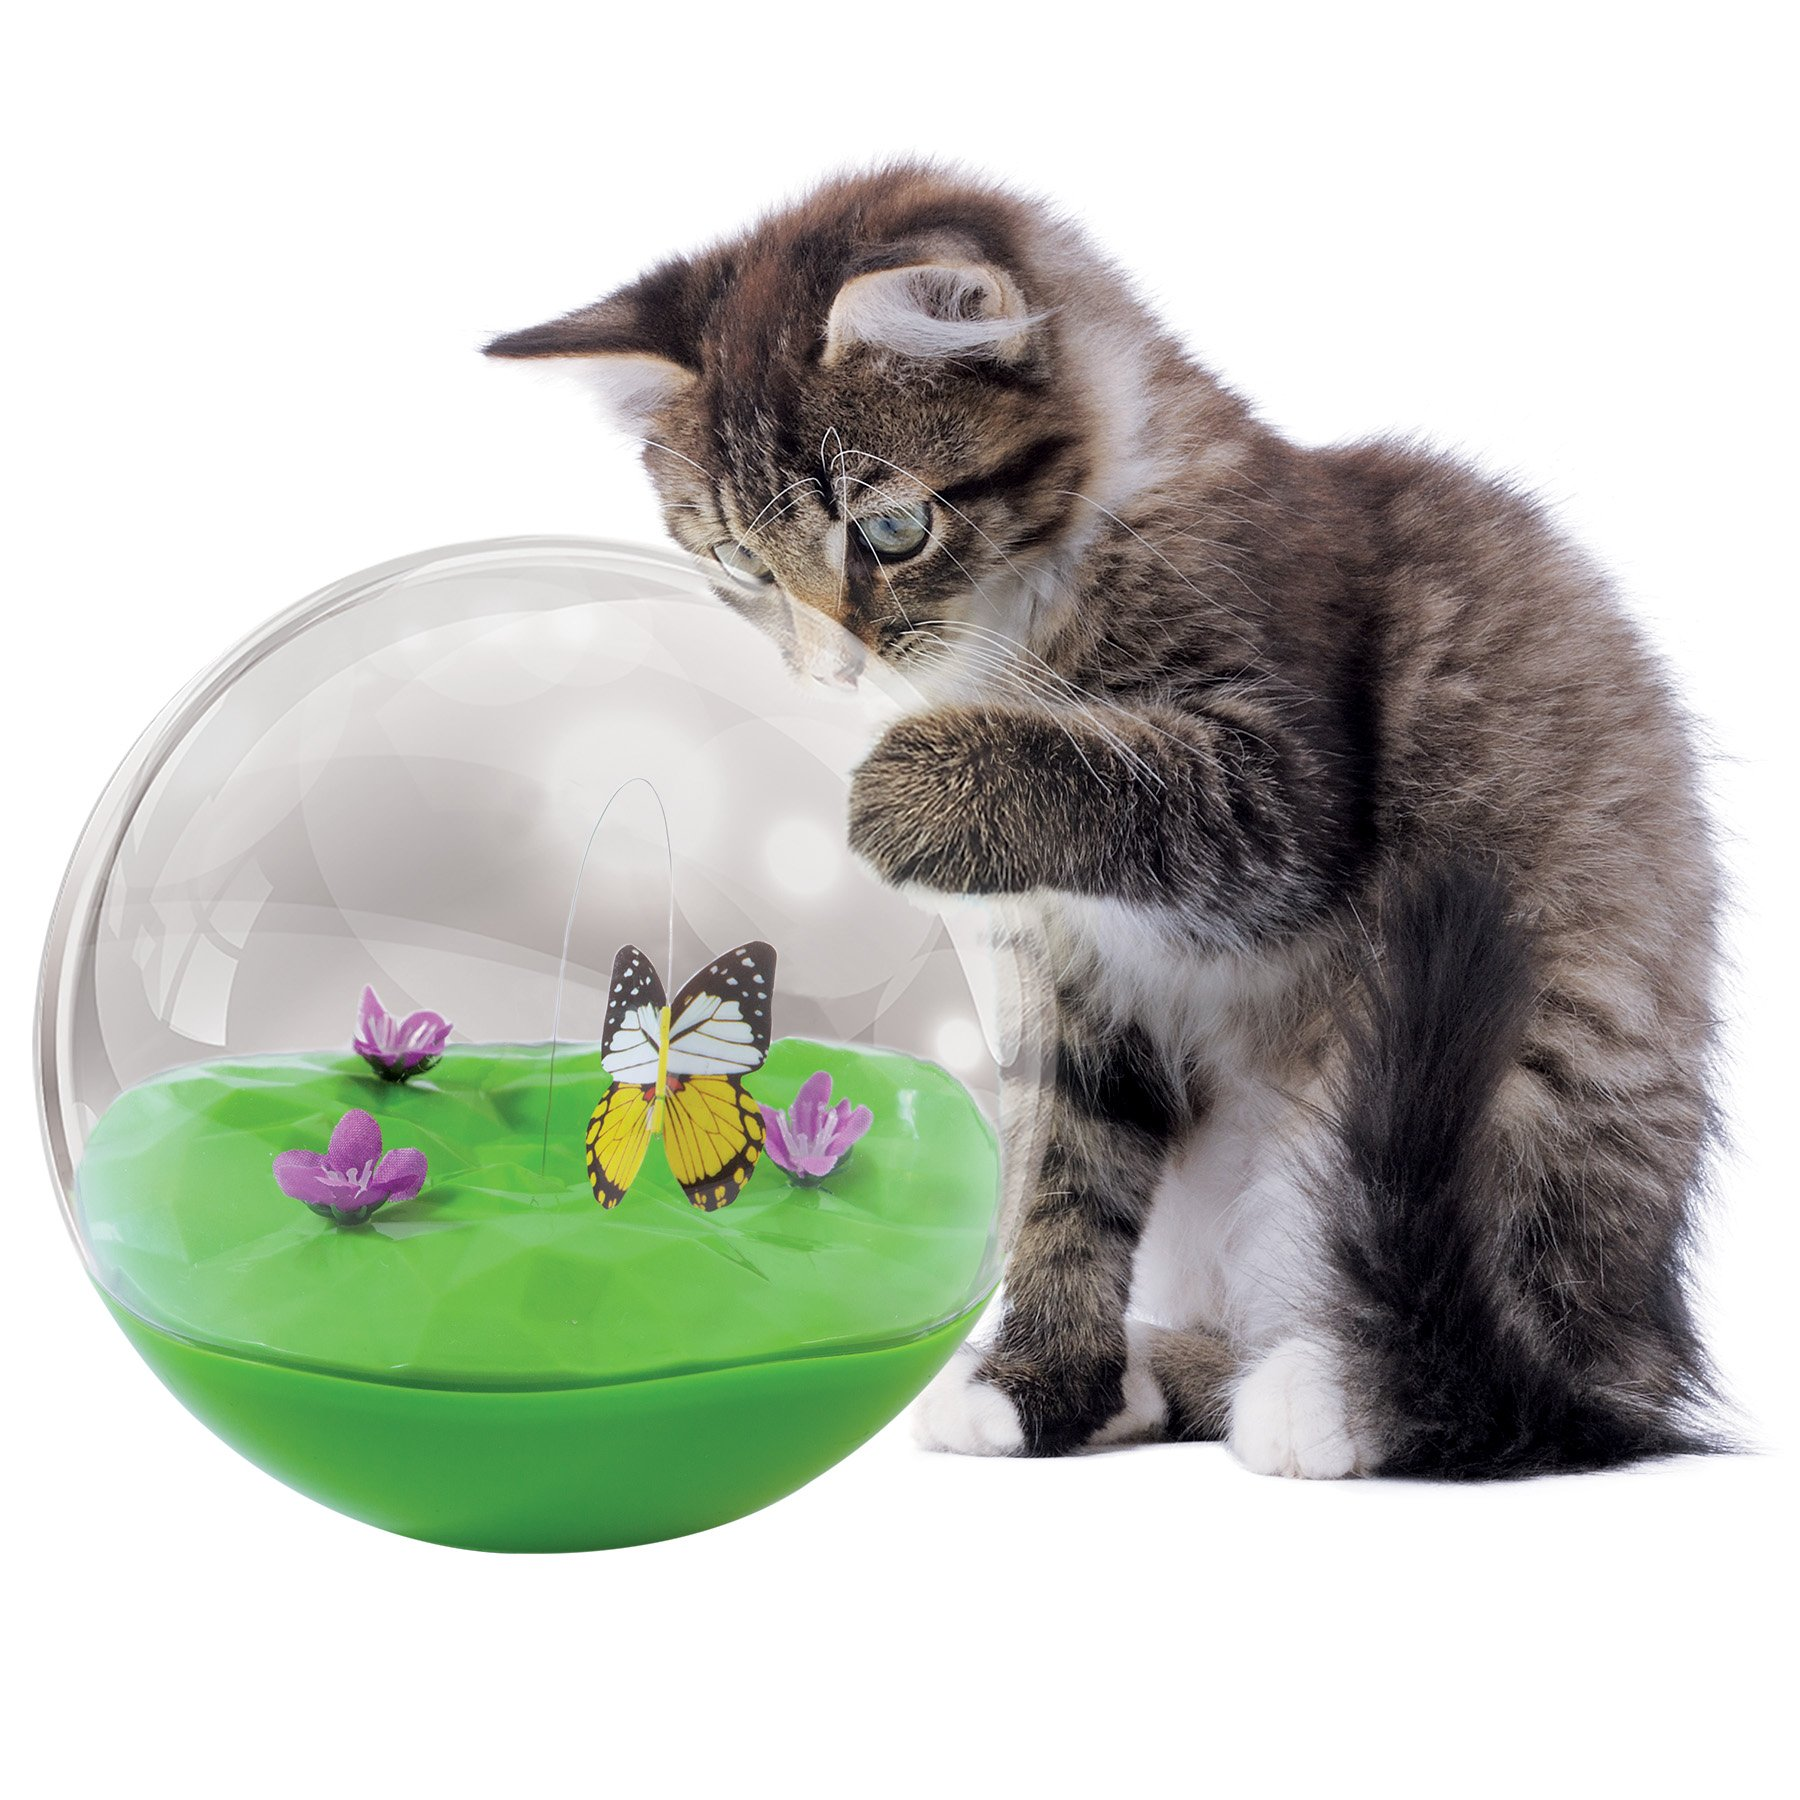 Petmate Jackson Galaxy Butterfly in a Ball Cat Toy